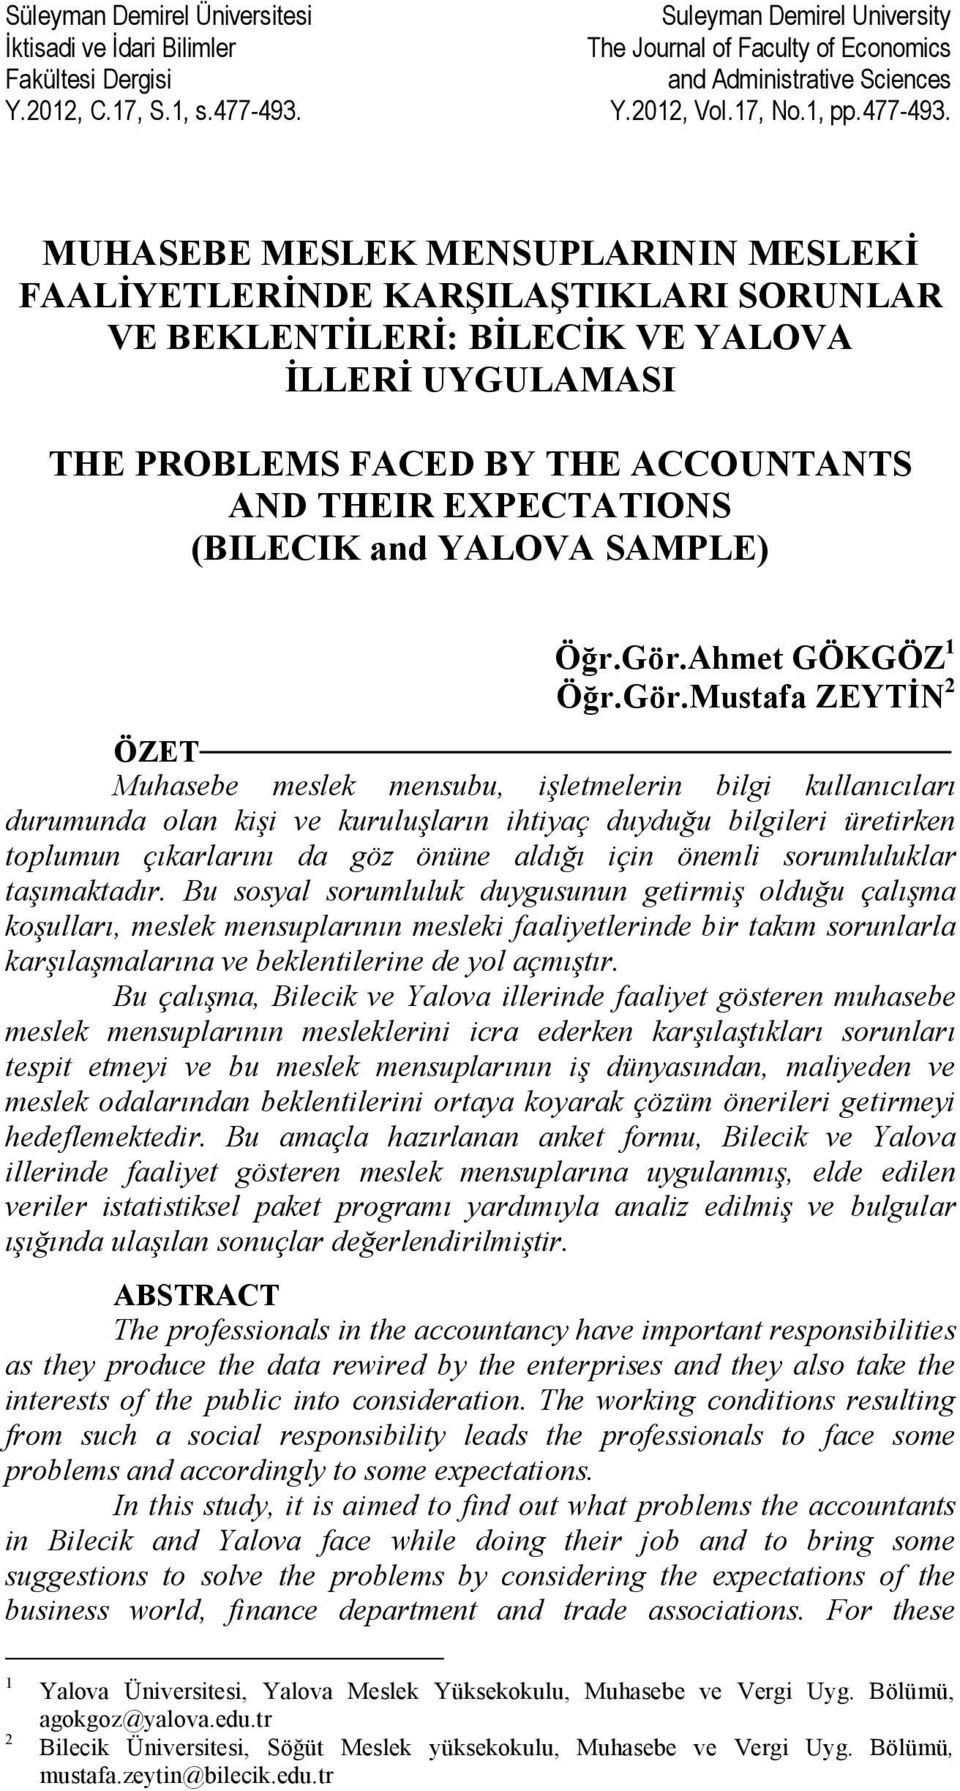 MUHASEBE MESLEK MENSUPLARININ MESLEKİ FAALİYETLERİNDE KARŞILAŞTIKLARI SORUNLAR VE BEKLENTİLERİ: BİLECİK VE YALOVA İLLERİ UYGULAMASI THE PROBLEMS FACED BY THE ACCOUNTANTS AND THEIR EXPECTATIONS